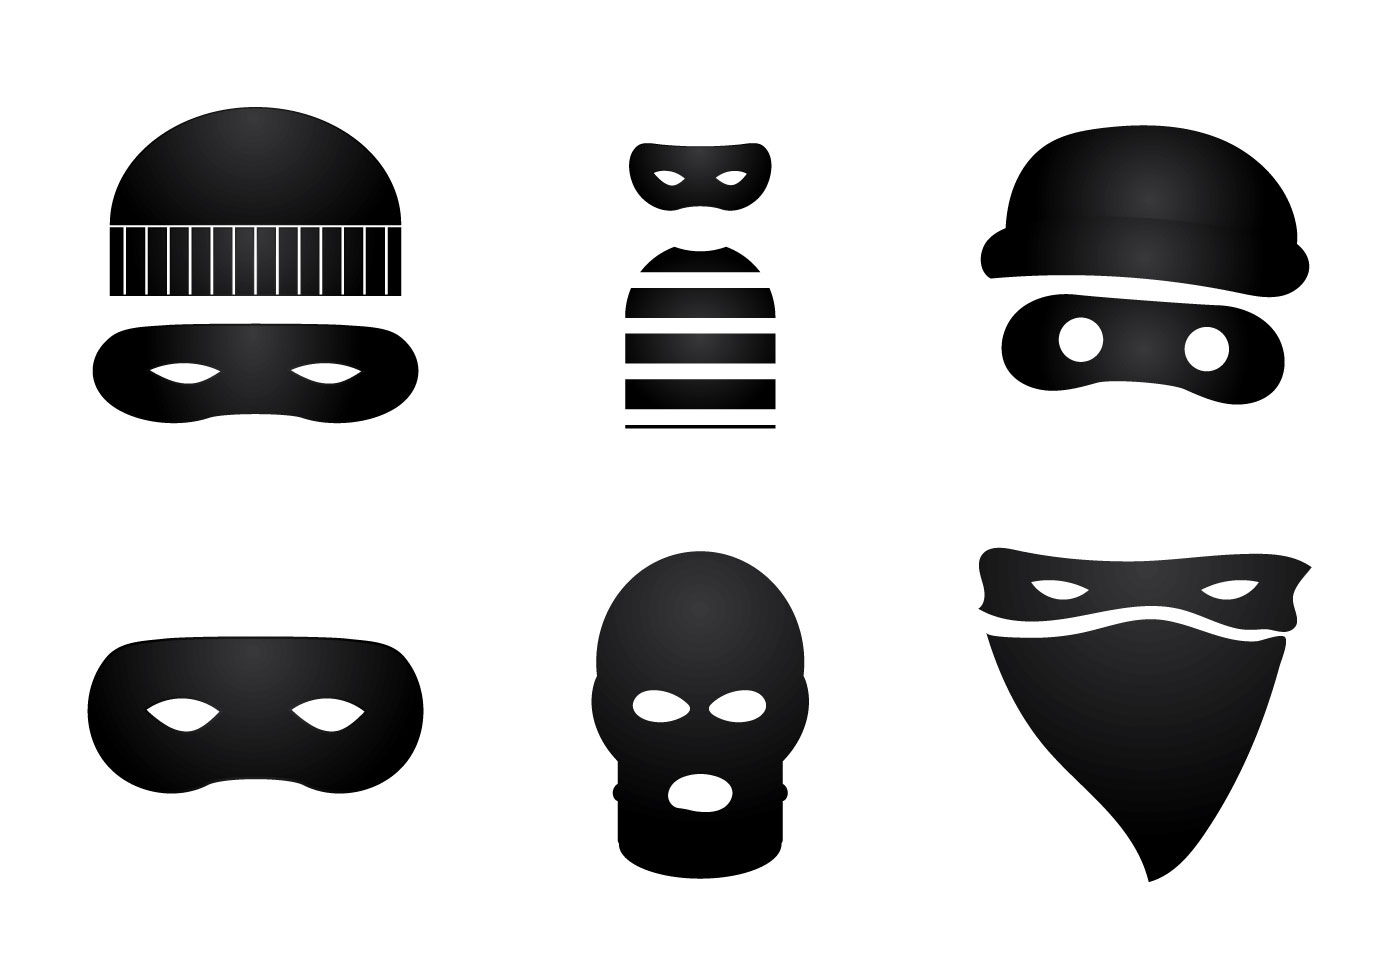 f1e1a3f02d2 Robber Free Vector Art - (1577 Free Downloads)